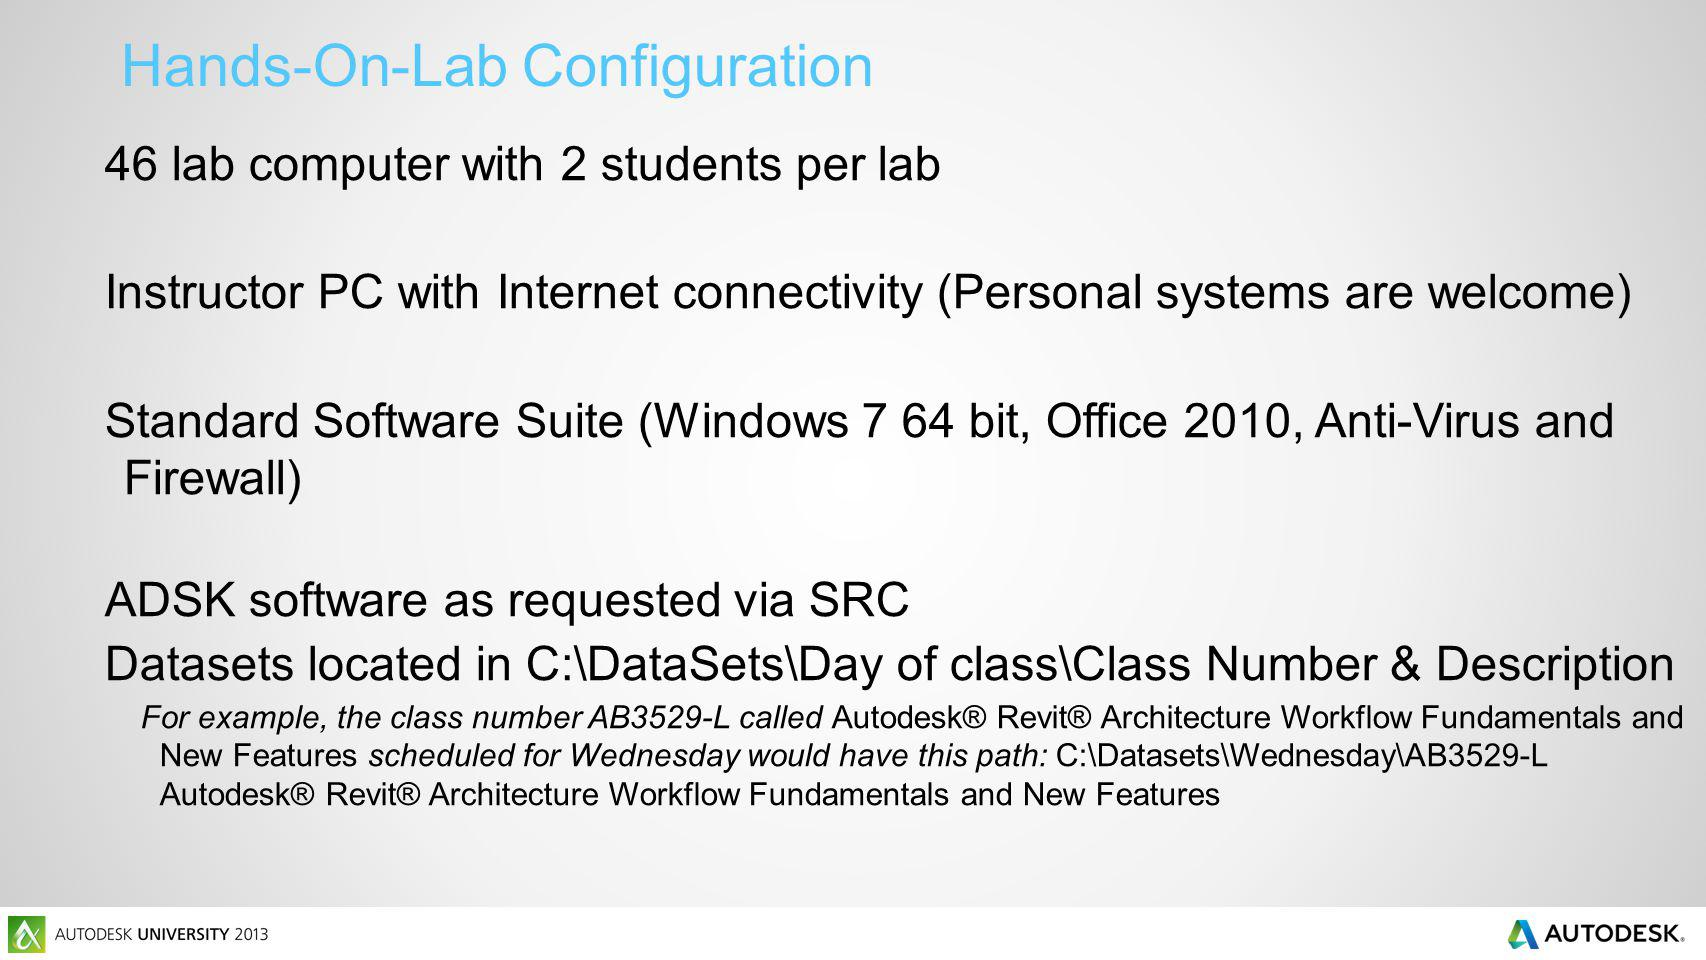 46 lab computer with 2 students per lab Instructor PC with Internet connectivity (Personal systems are welcome) Standard Software Suite (Windows 7 64 bit, Office 2010, Anti-Virus and Firewall) ADSK software as requested via SRC Datasets located in C:\DataSets\Day of class\Class Number & Description For example, the class number AB3529-L called Autodesk® Revit® Architecture Workflow Fundamentals and New Features scheduled for Wednesday would have this path: C:\Datasets\Wednesday\AB3529-L Autodesk® Revit® Architecture Workflow Fundamentals and New Features Hands-On-Lab Configuration